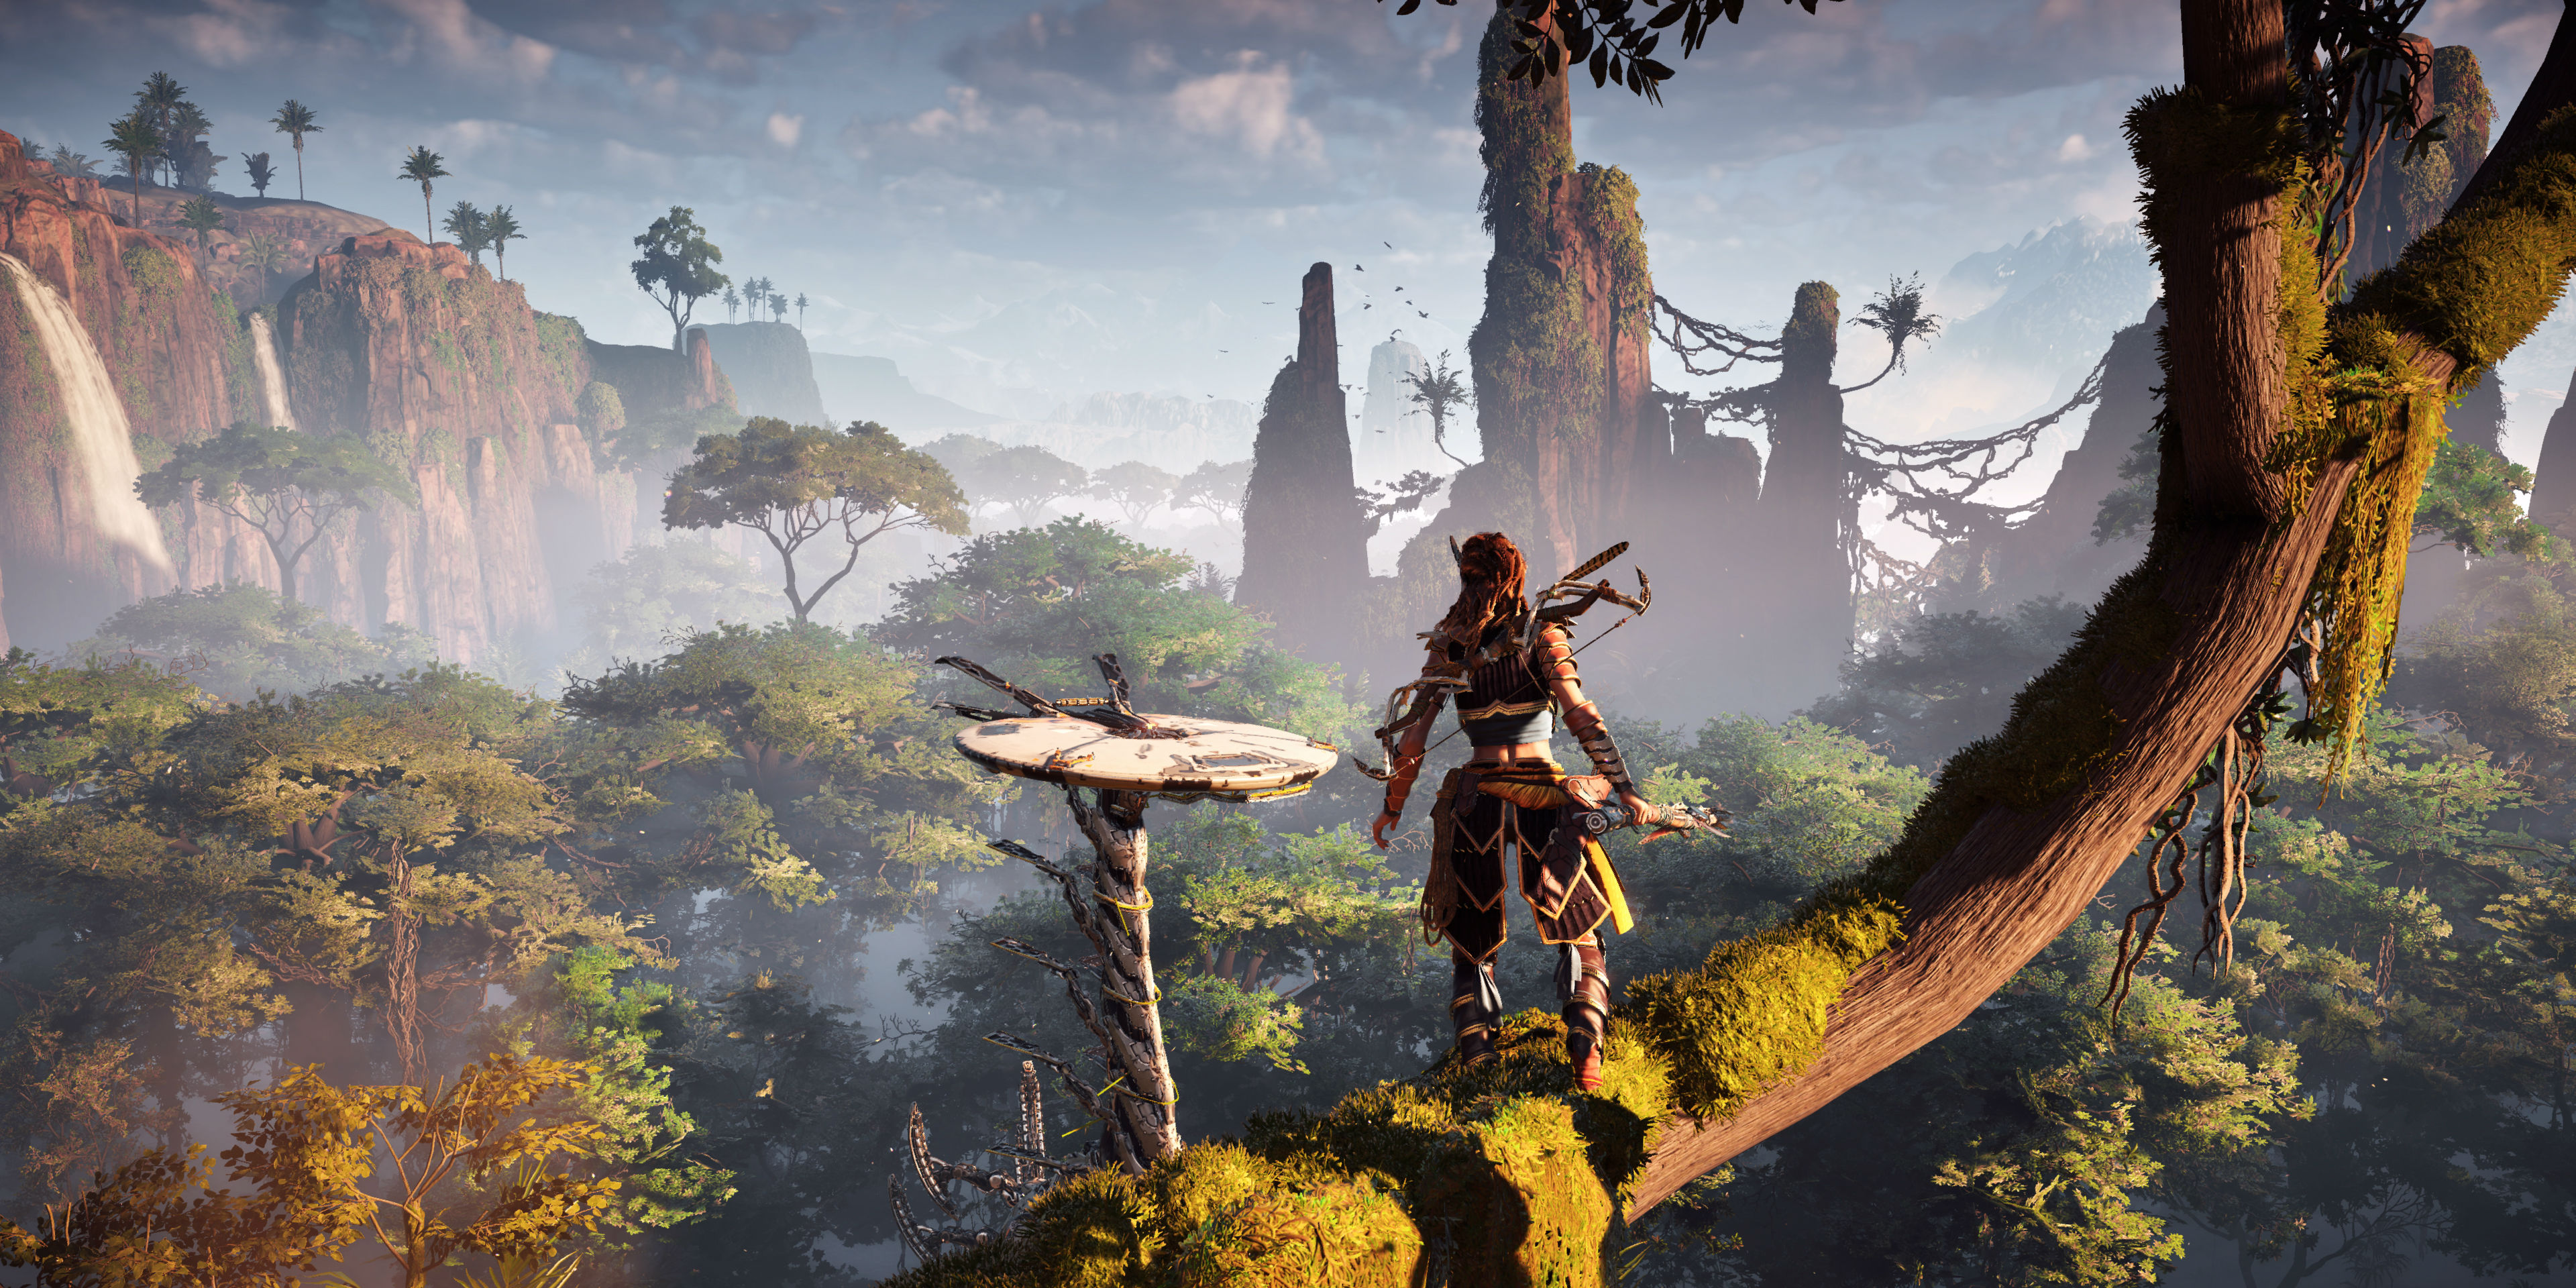 Just what is Sony's strategy for making PS5 updates to key PS4 exclusives?